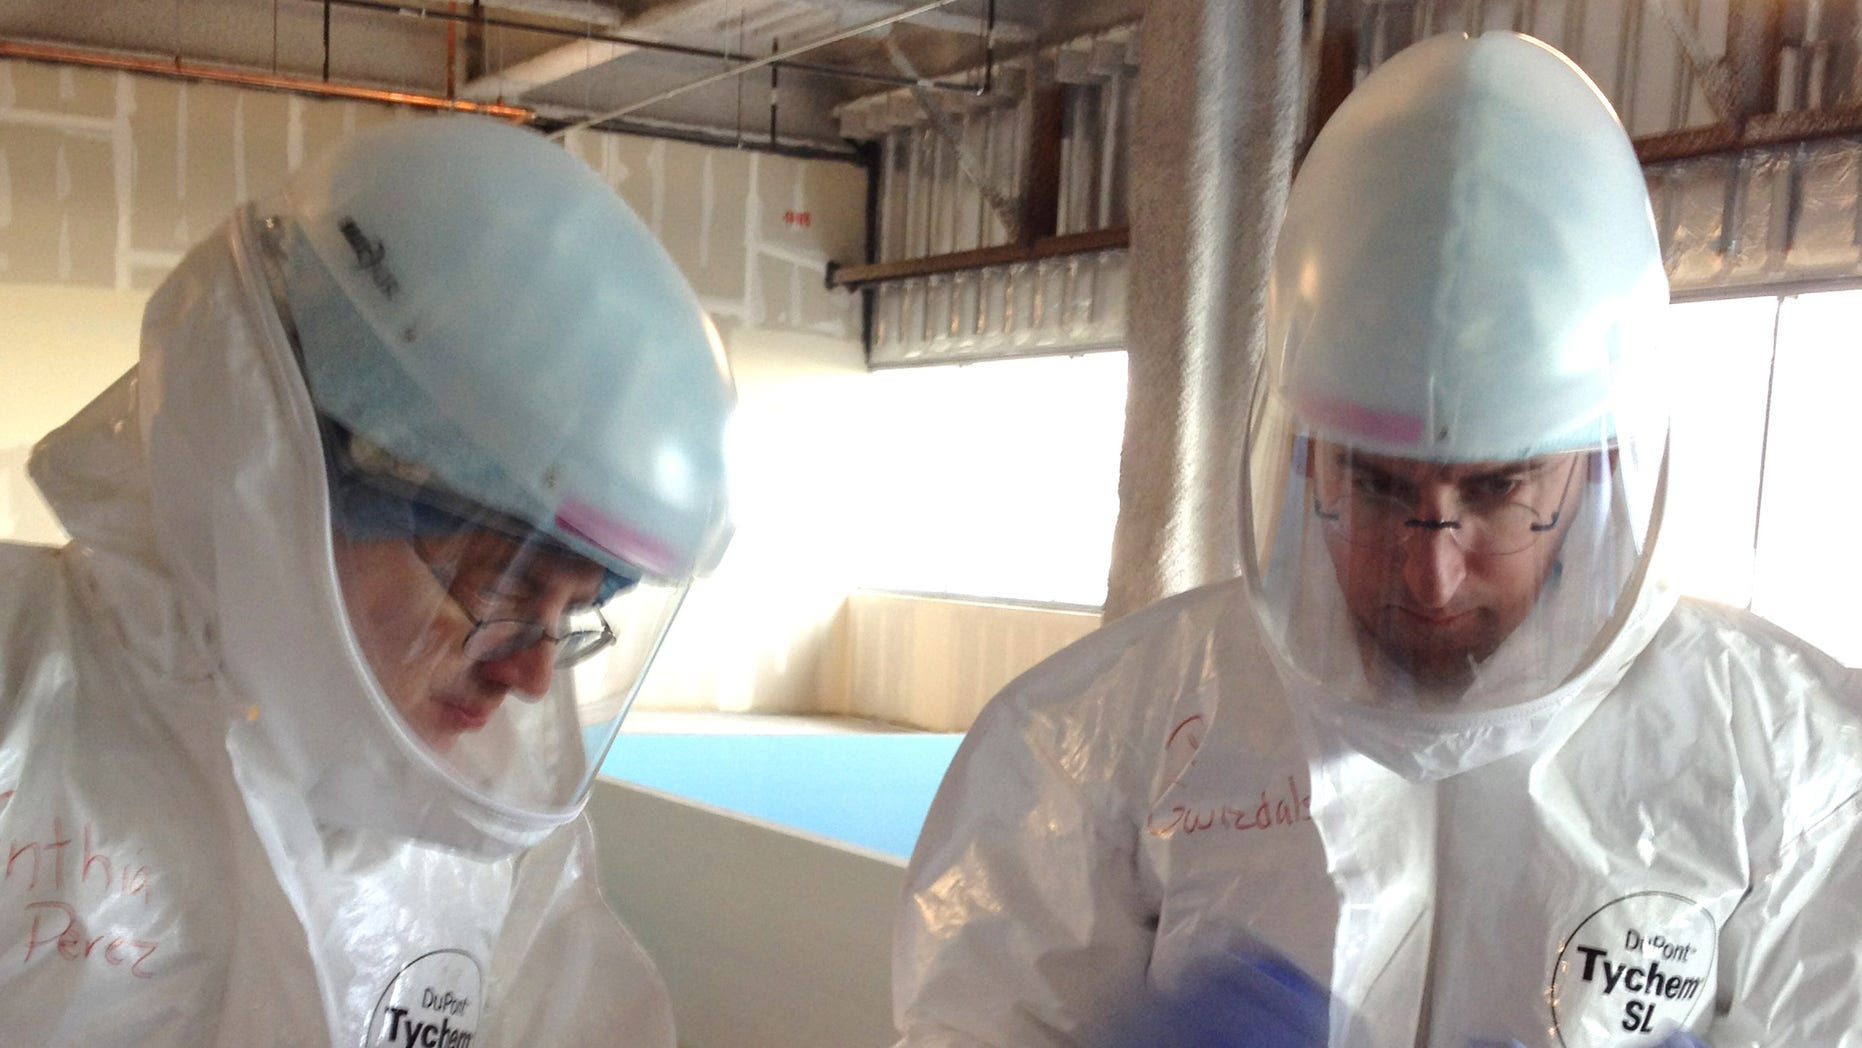 In this Monday, Oct. 6, 2014, photo Dr. Michael OConnor , left, and Dr. Mark Nunnally, learn how to use personal protective gear during Ebola preparedness training at the University of Chicago. (AP Photo/Lindsey Tanner)